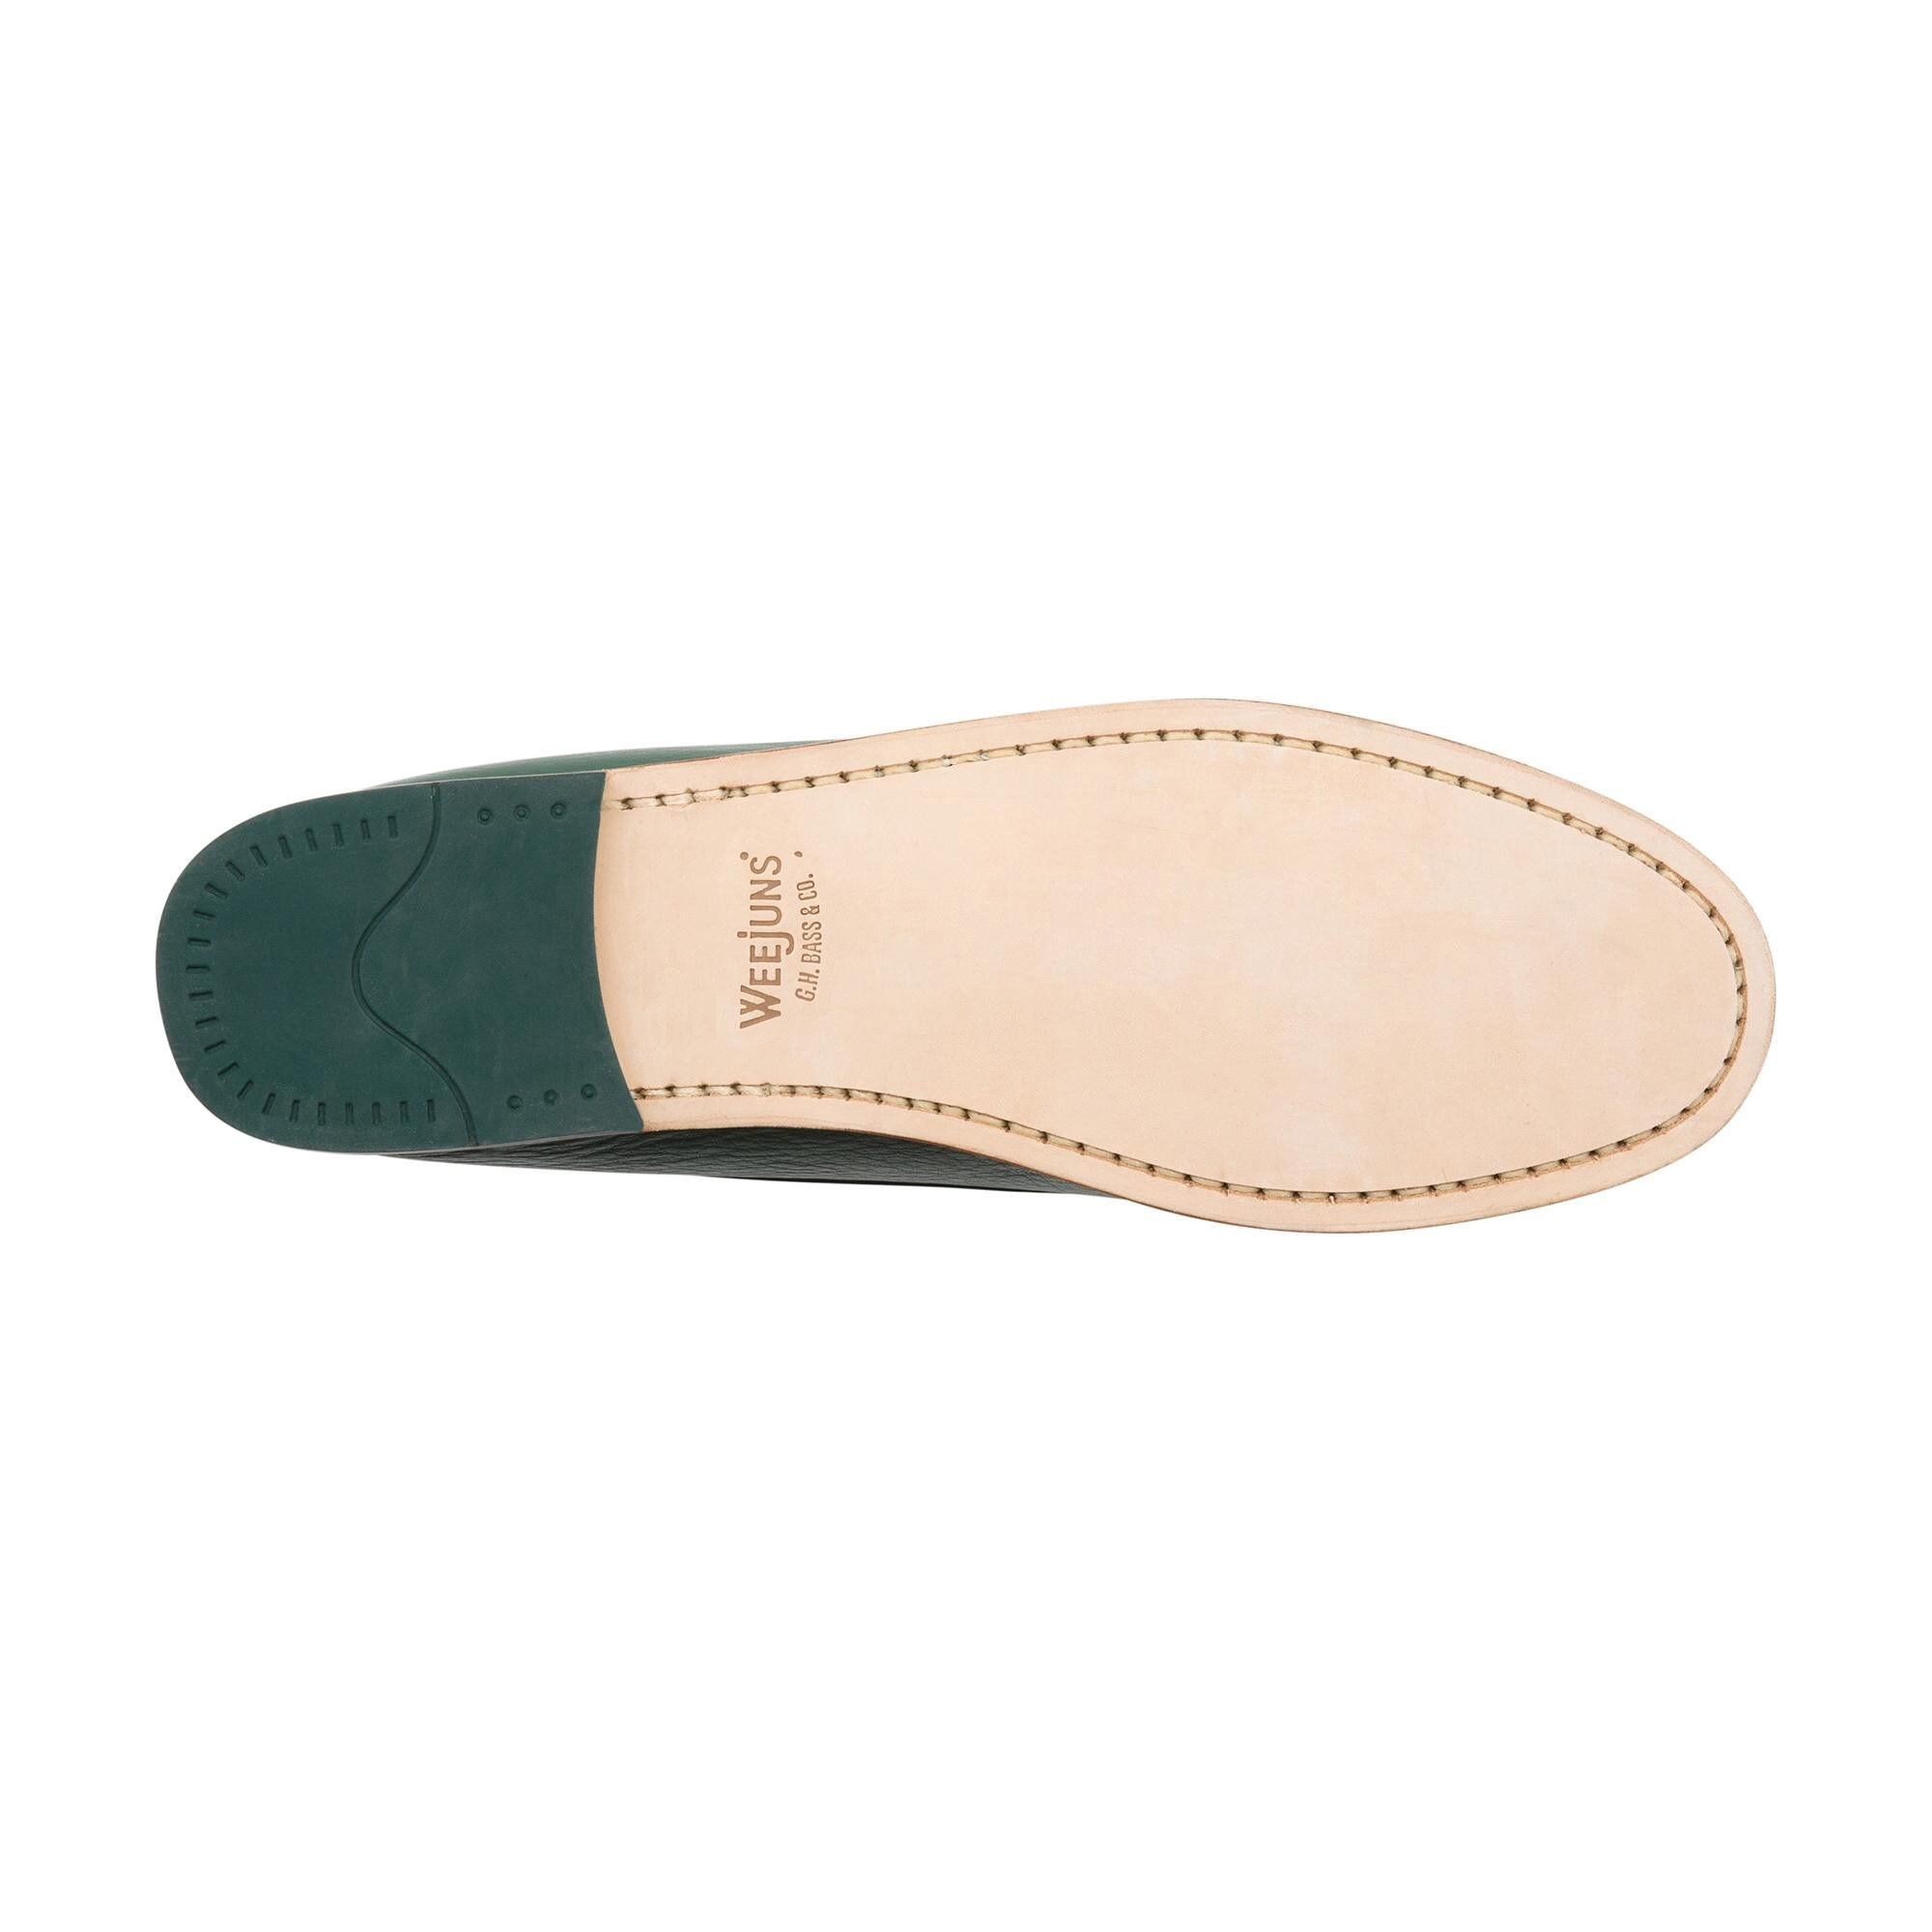 6e5d2d9c077 G.h. Bass   Co. Whitney Natural Sole Weejuns - Aquarius Green 8.5